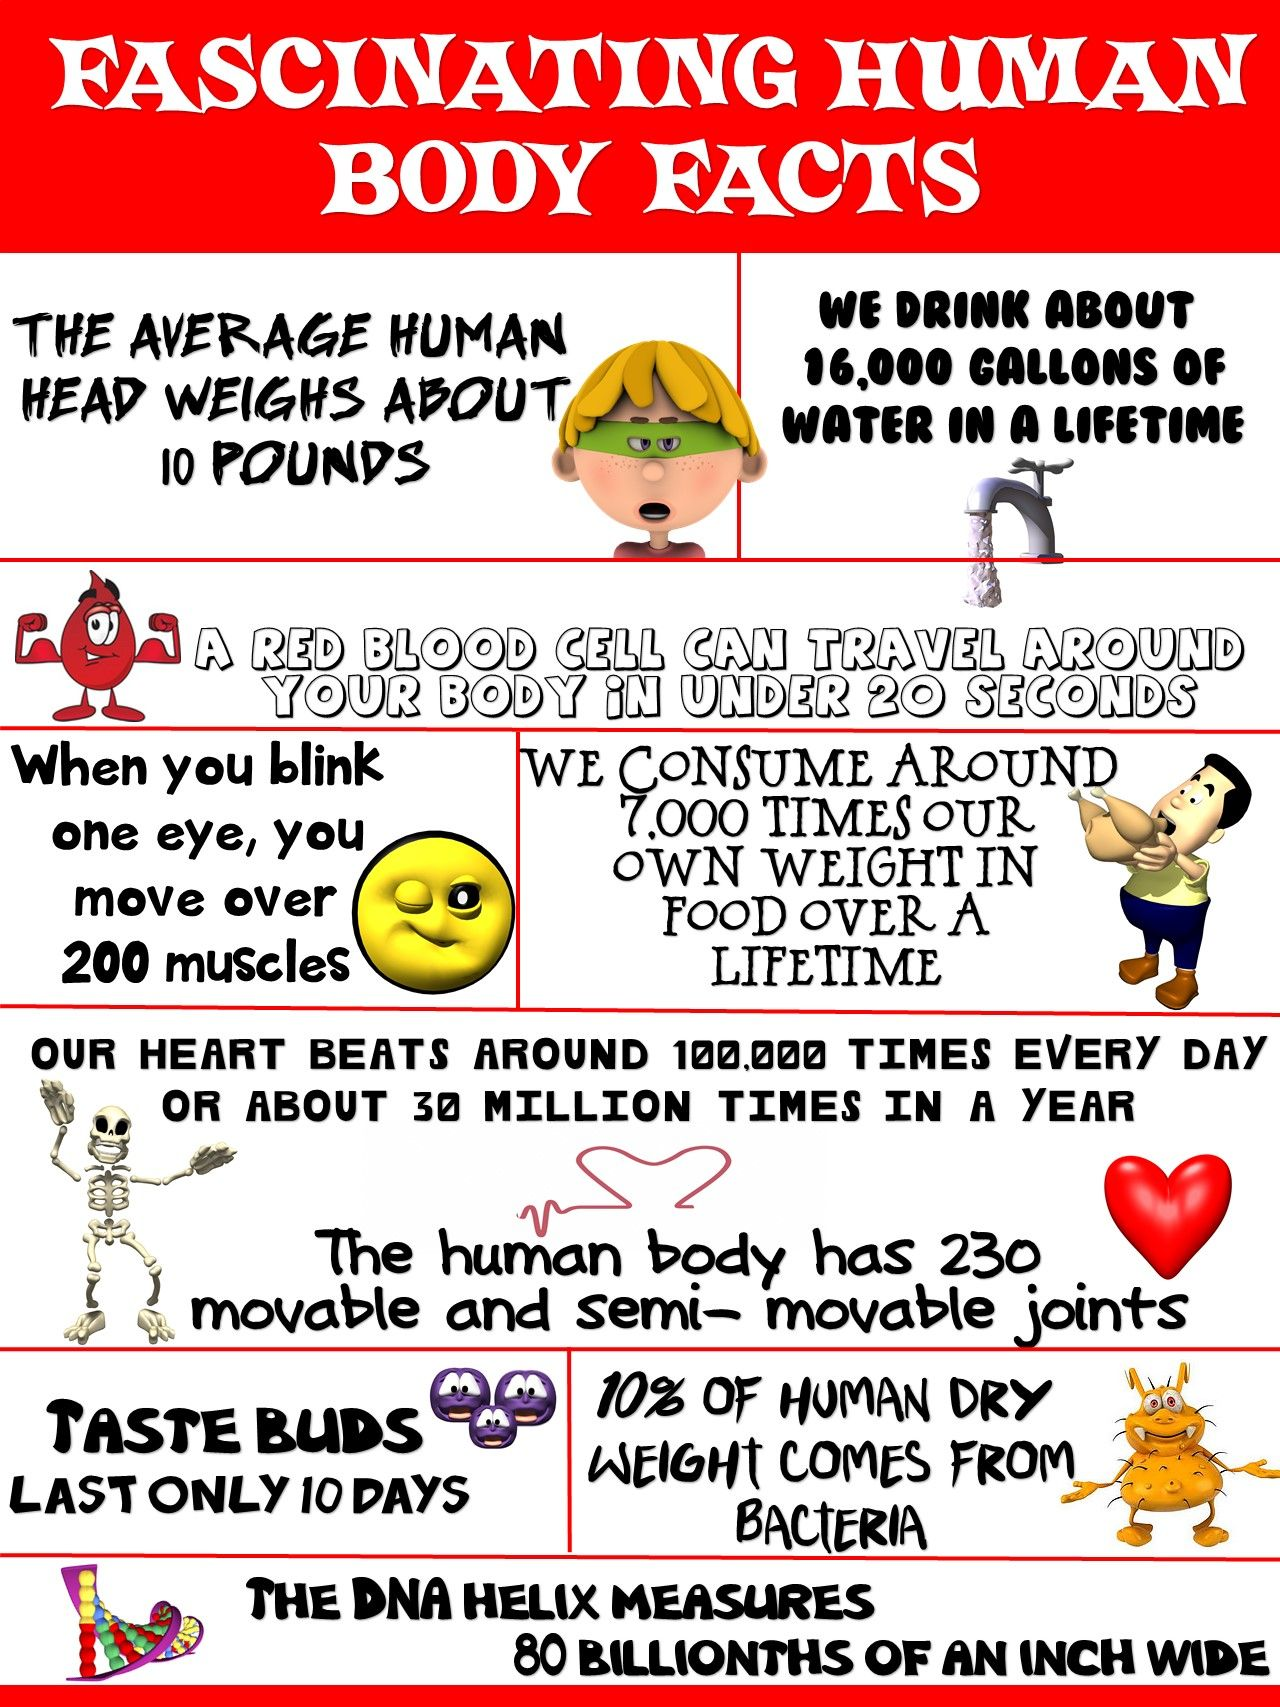 Health And Science Poster Fascinating Human Body Facts